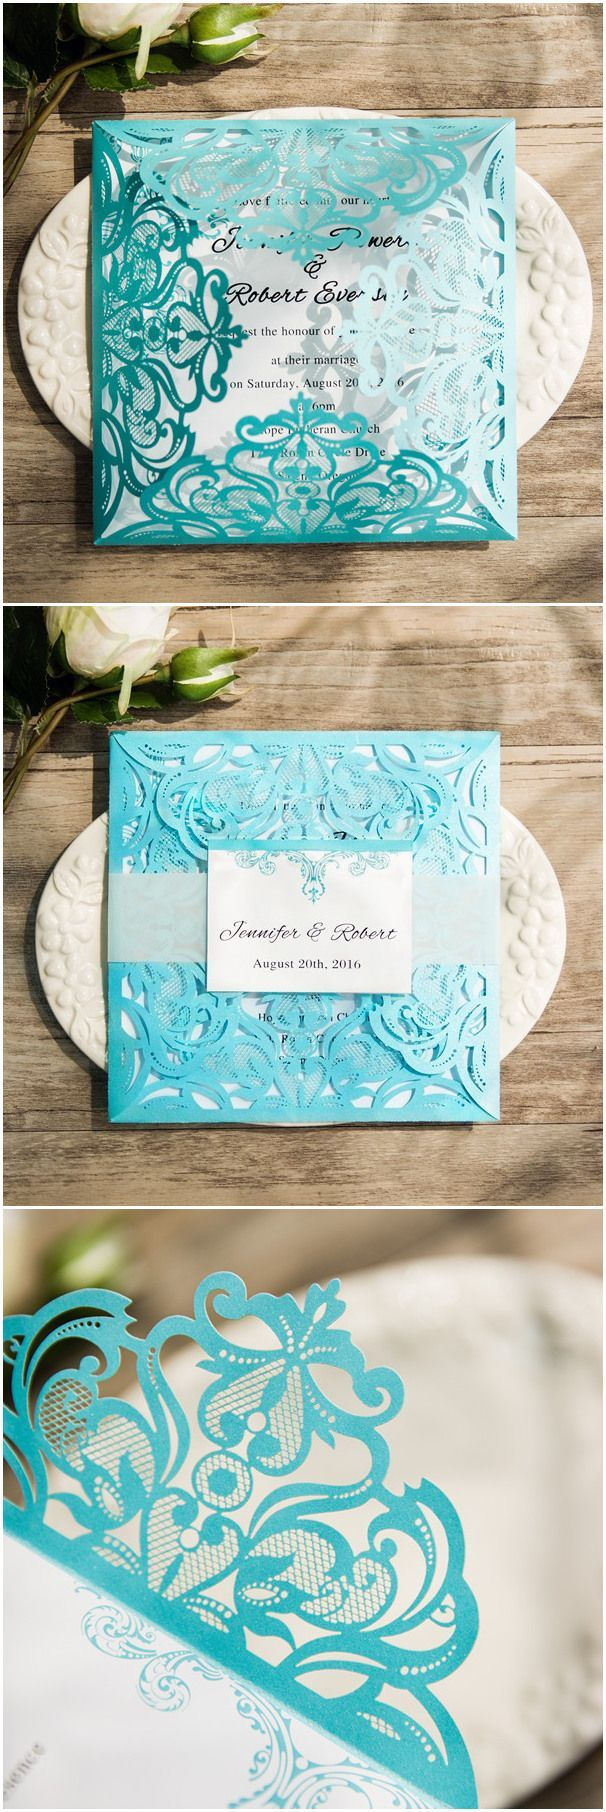 wedding invitations peacock theme%0A Tiffany blue themed laser cut wedding invitations with free rsvp cards  ewws     elegantwinvites